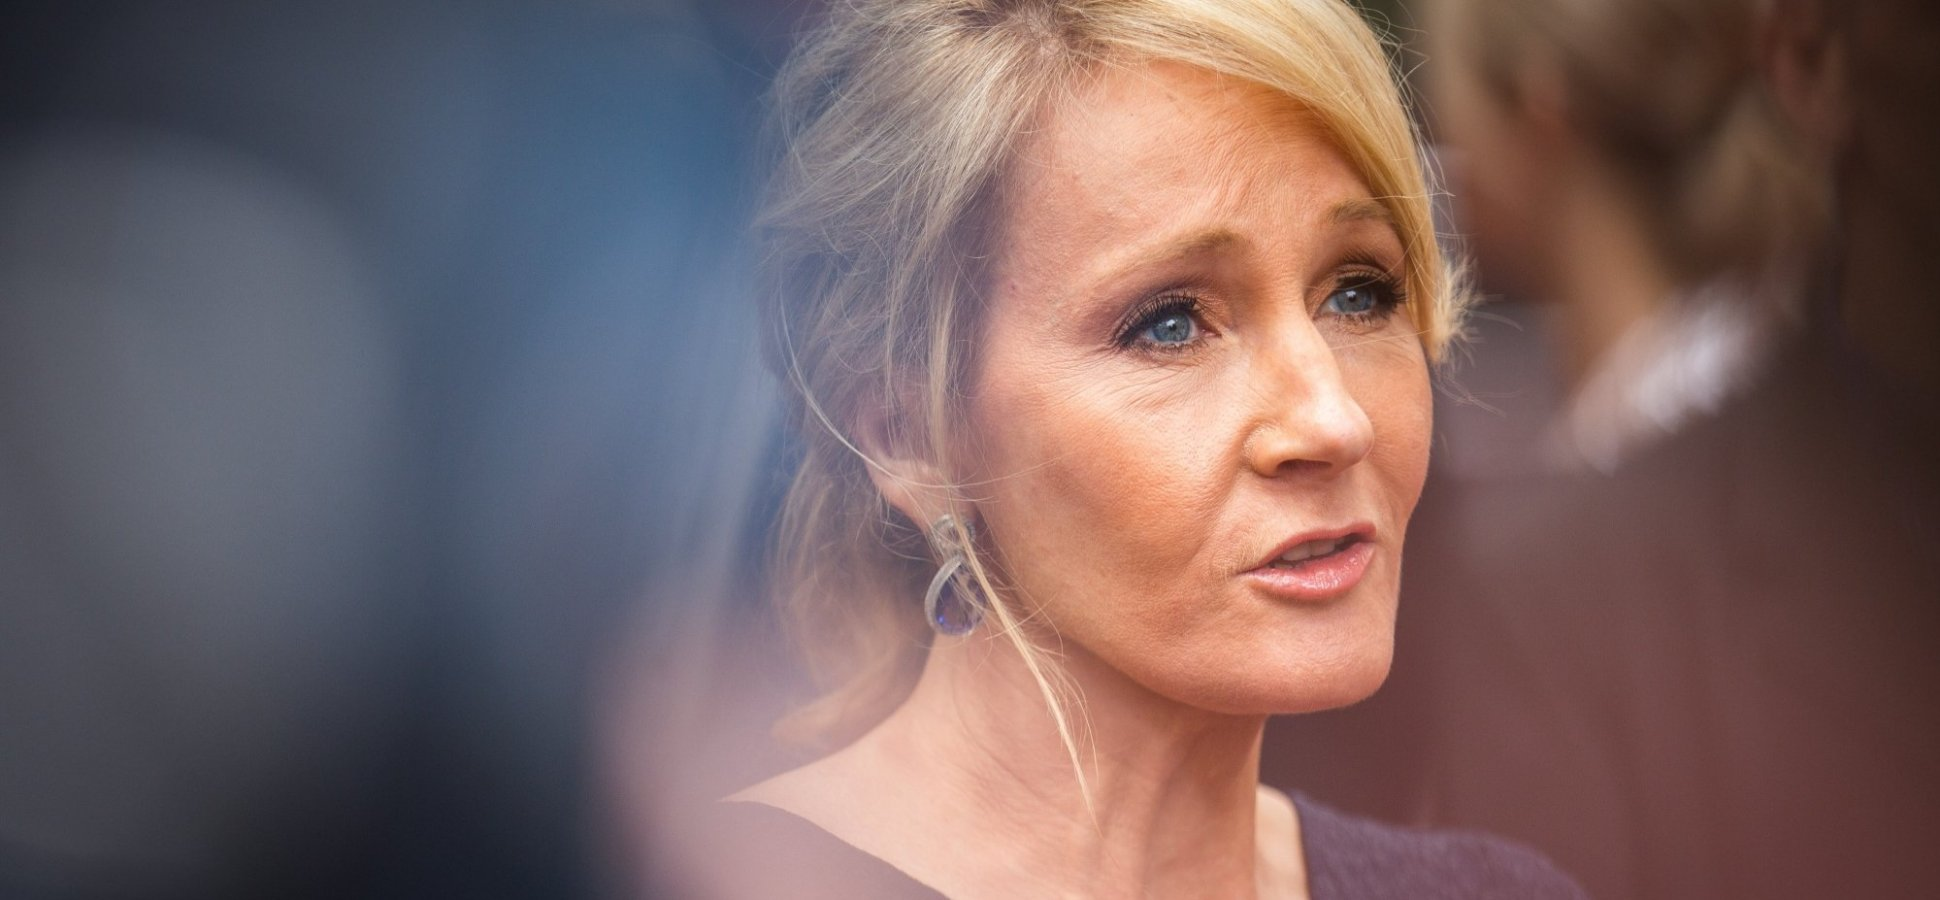 How Did J.K. Rowling Become Unbelievably Successful? She Found the Perfect Response to Failure